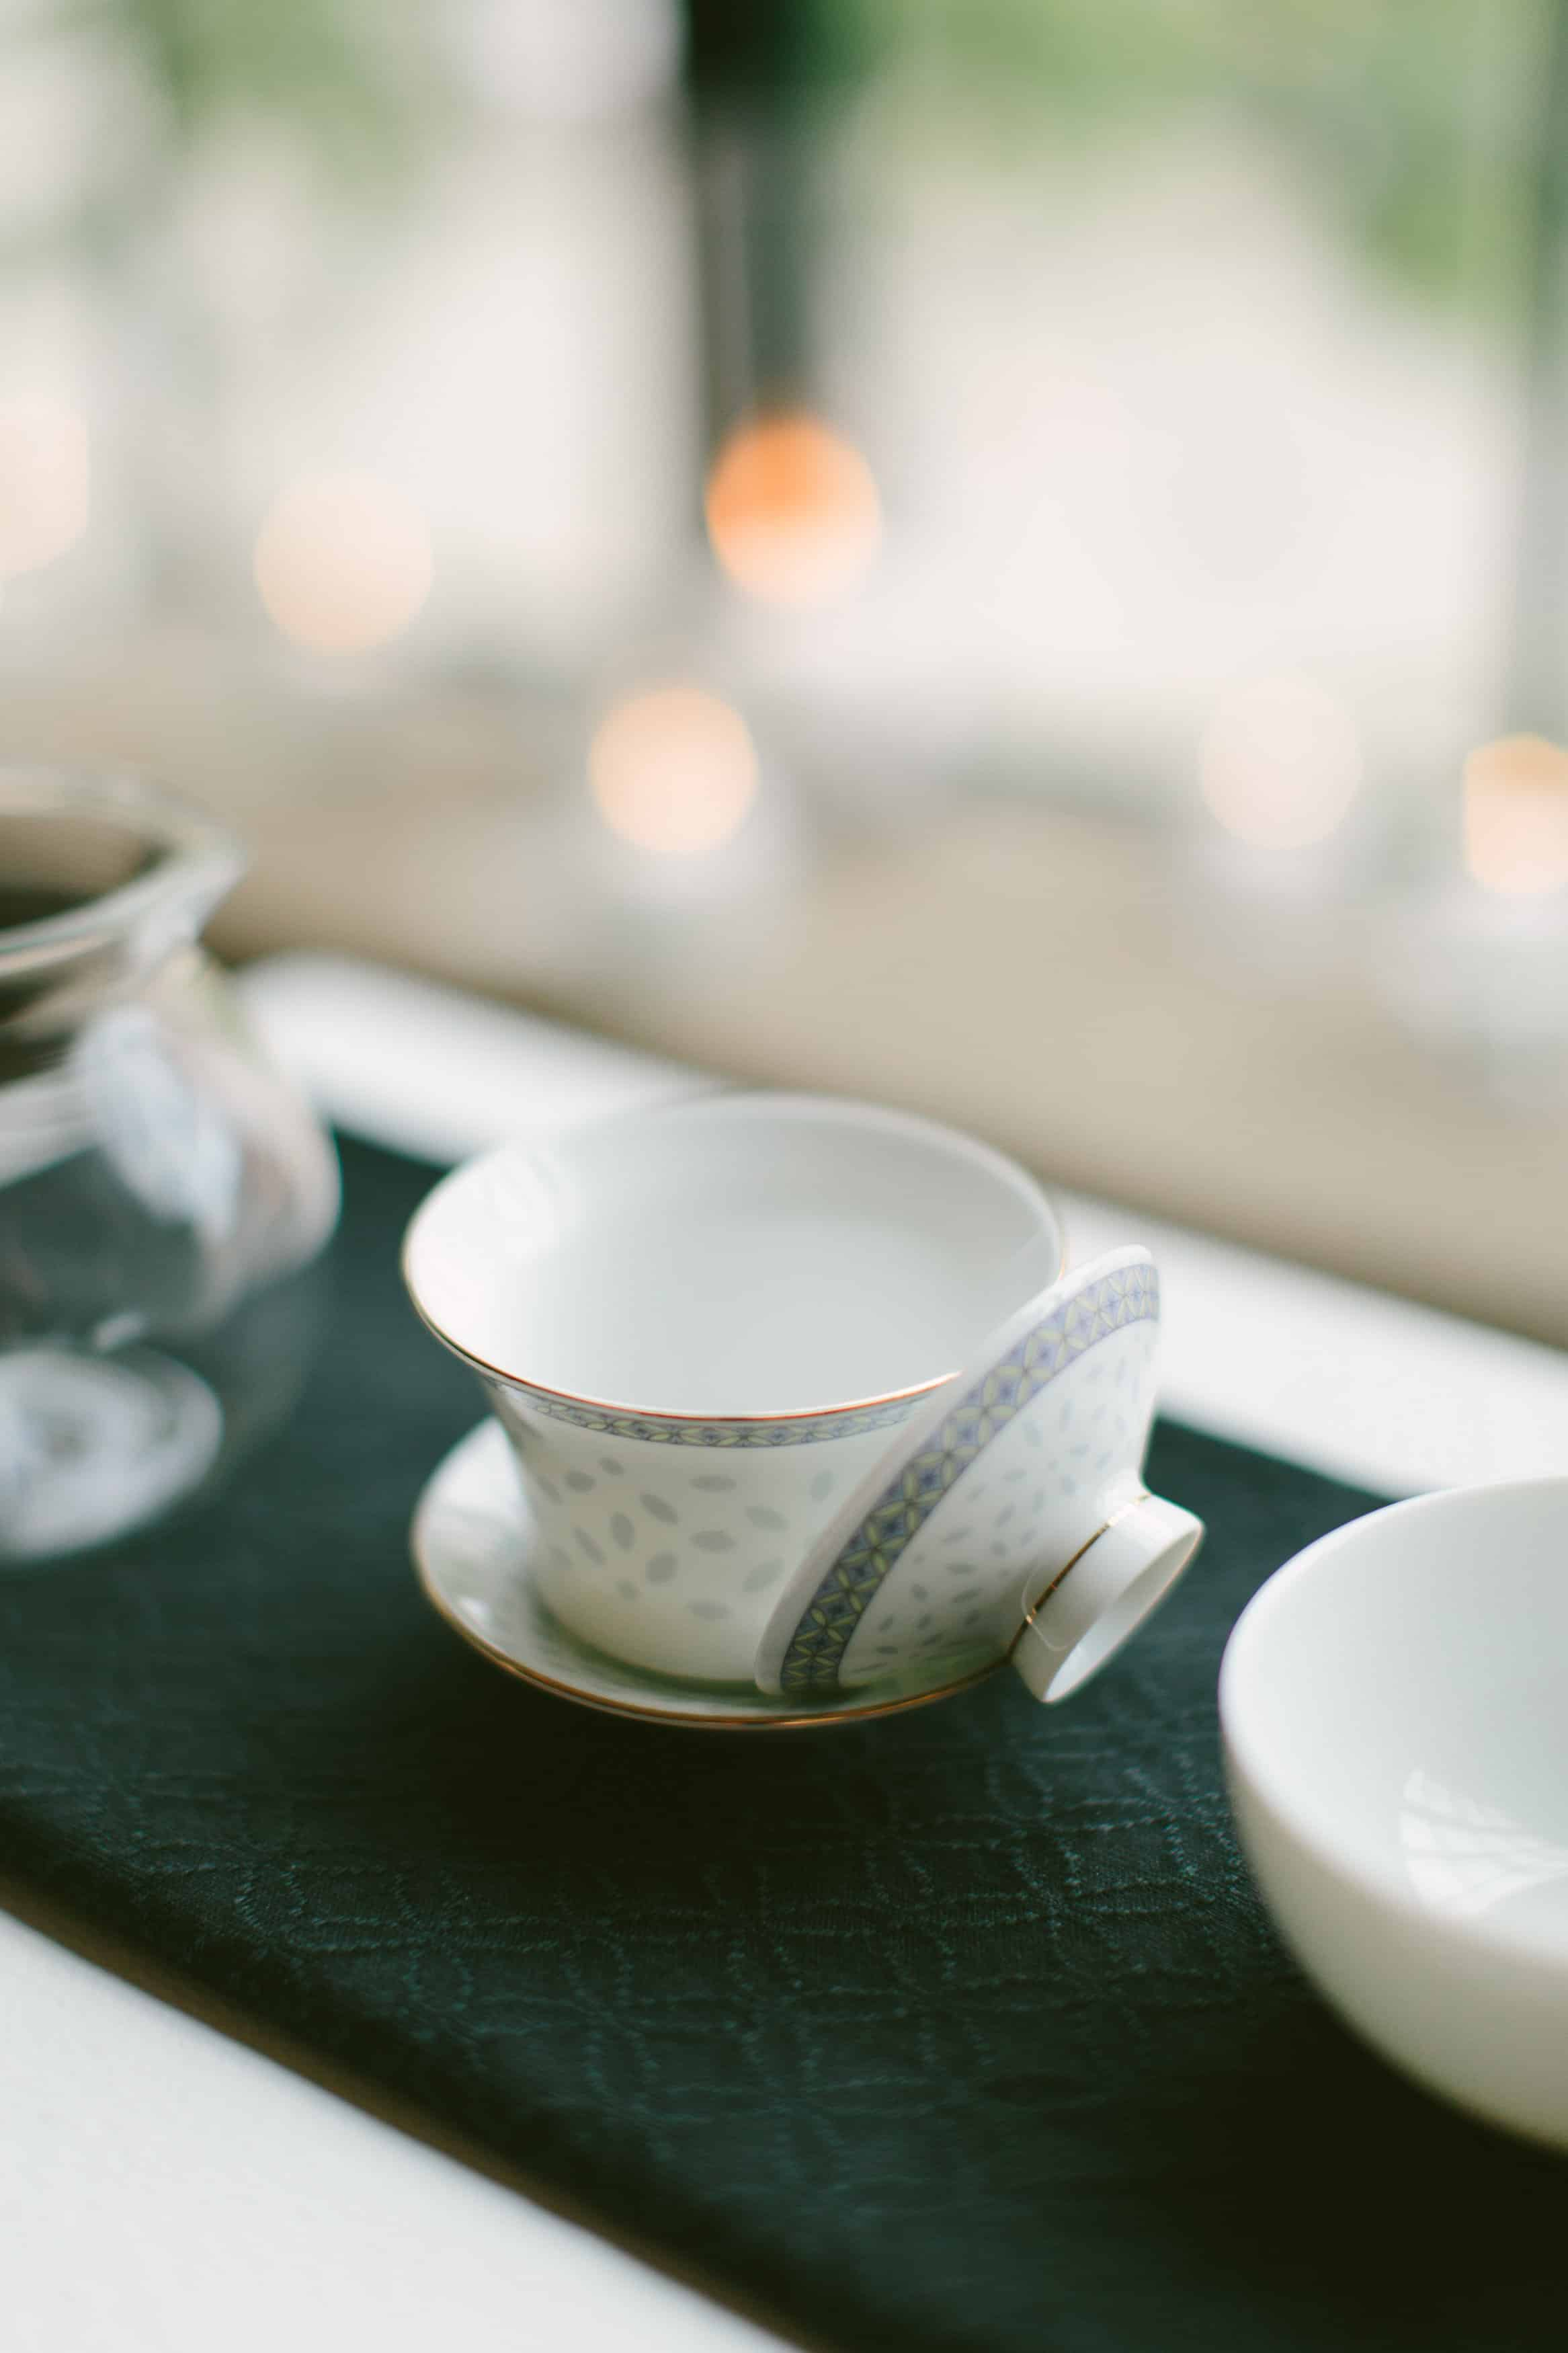 The wedding tea ware